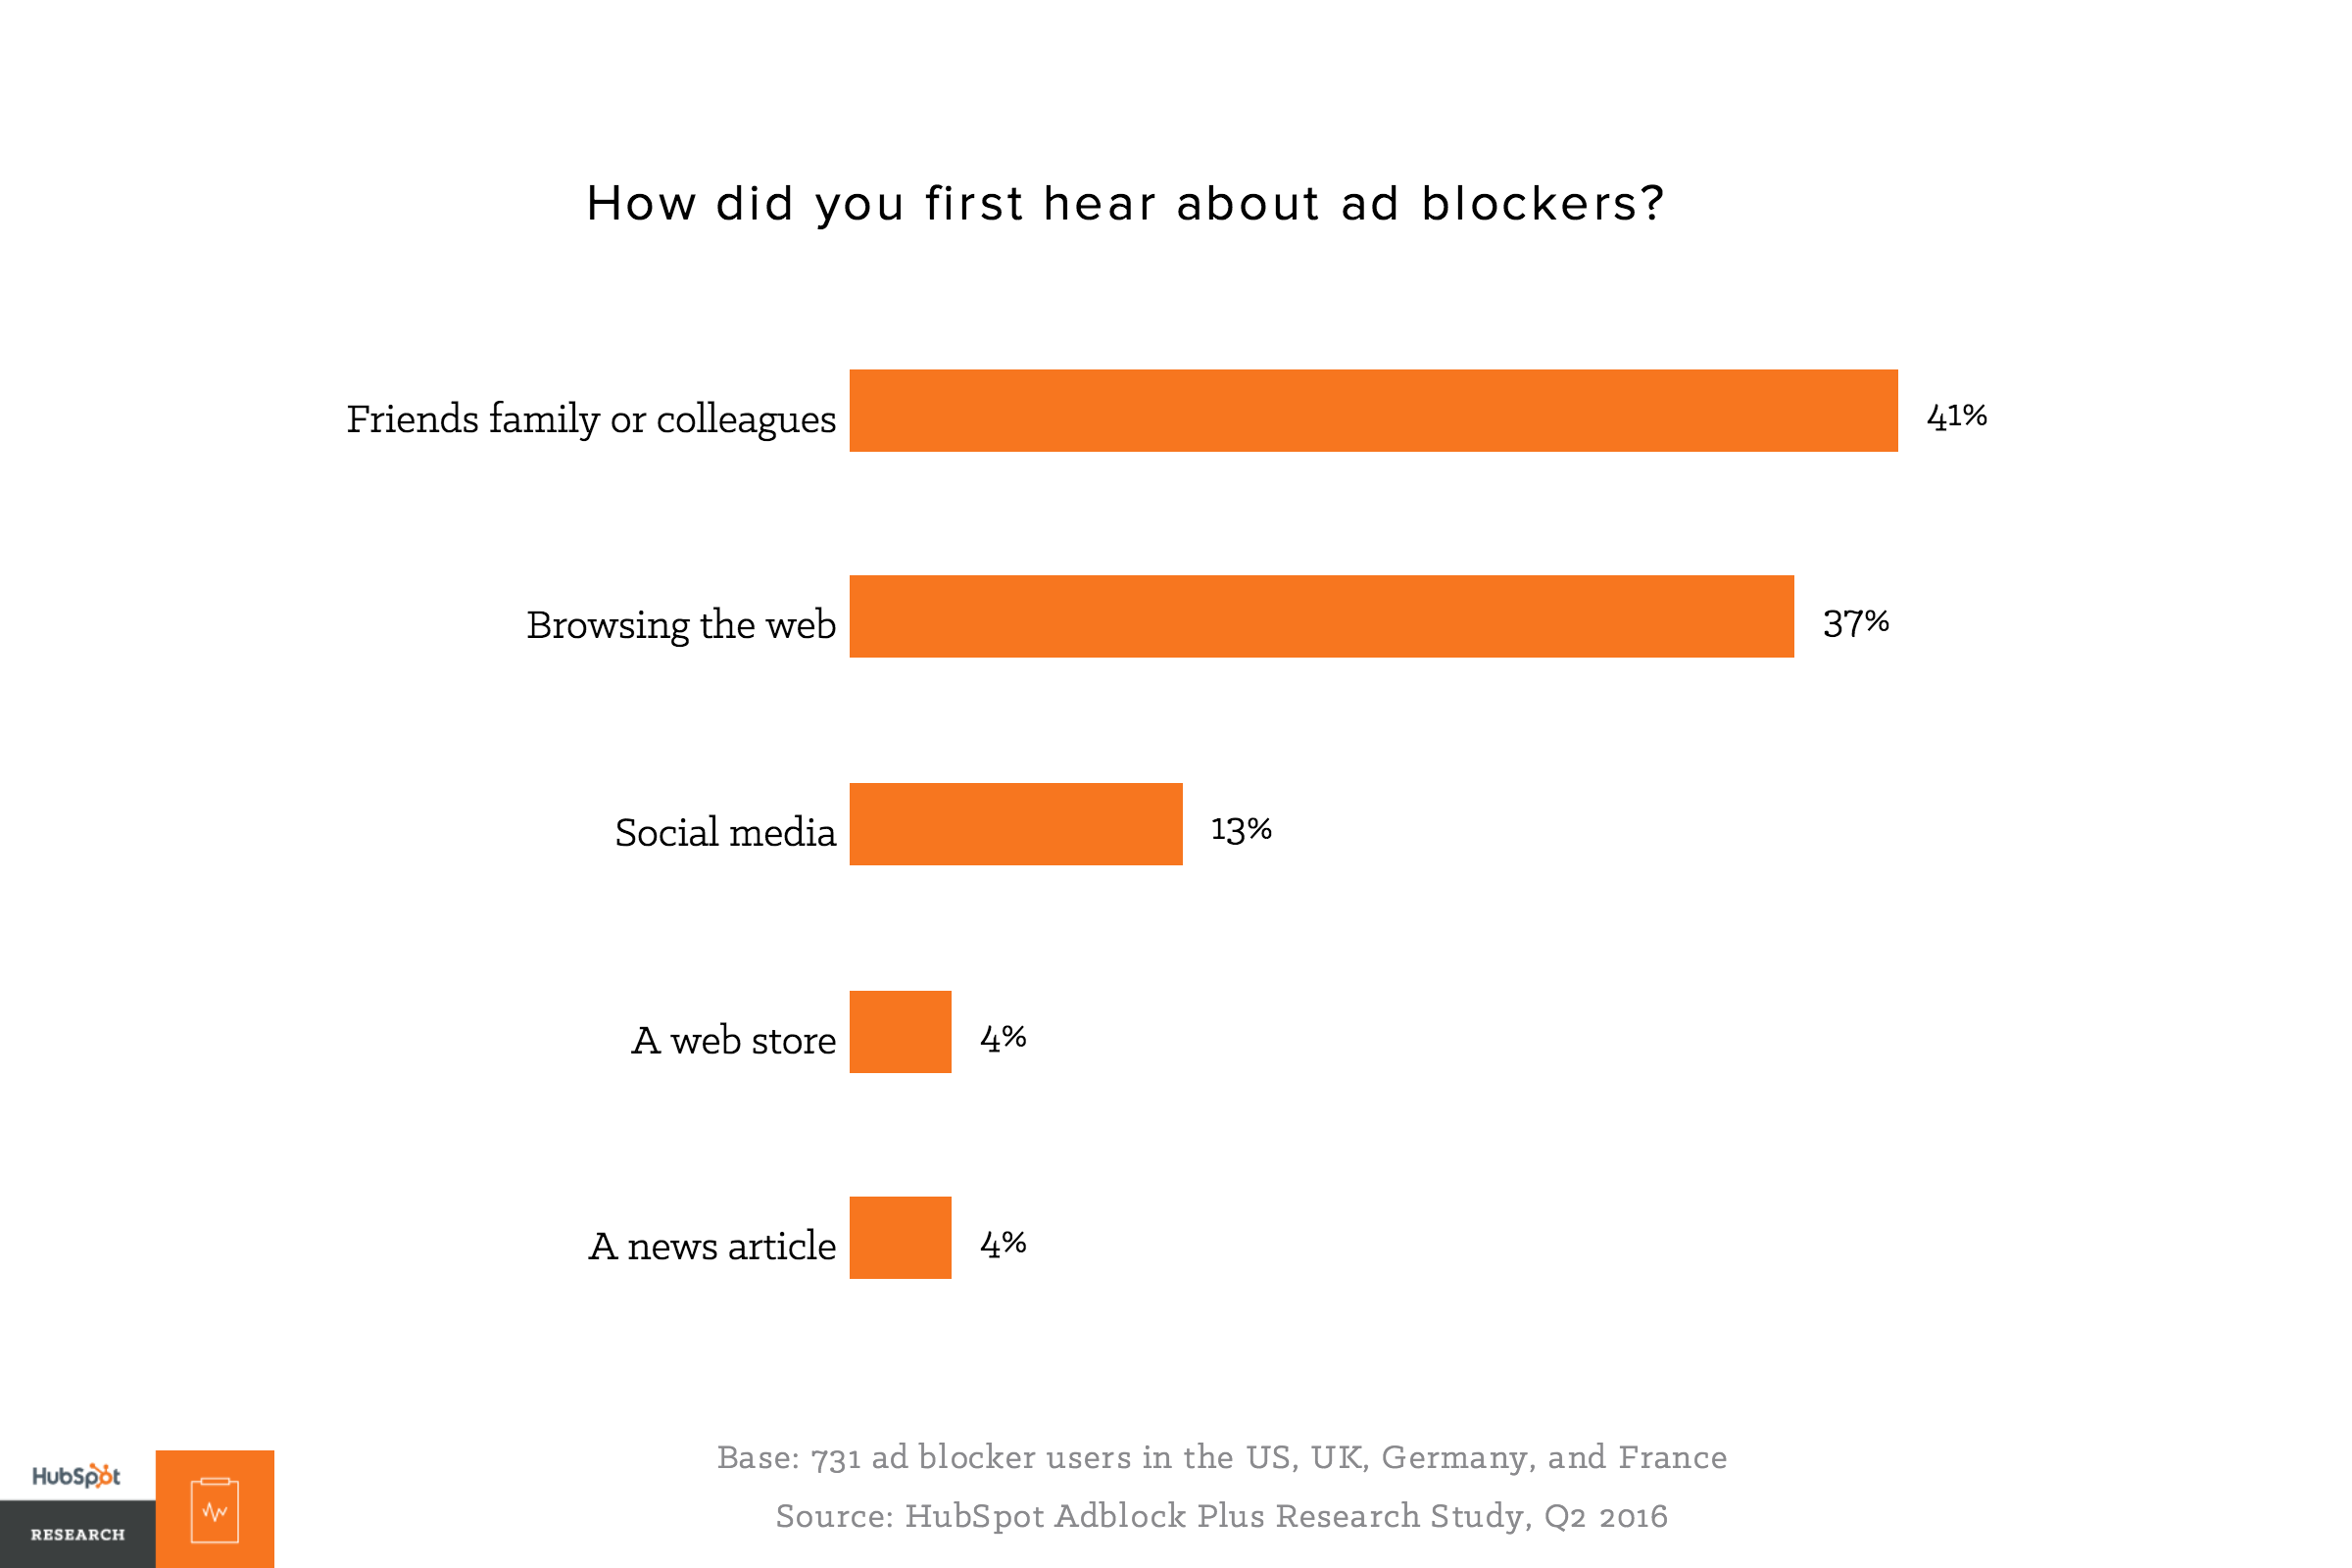 When We Asked Users Why They Installed An Ad Blocker, At Least A Third  Indicated That It's Because: